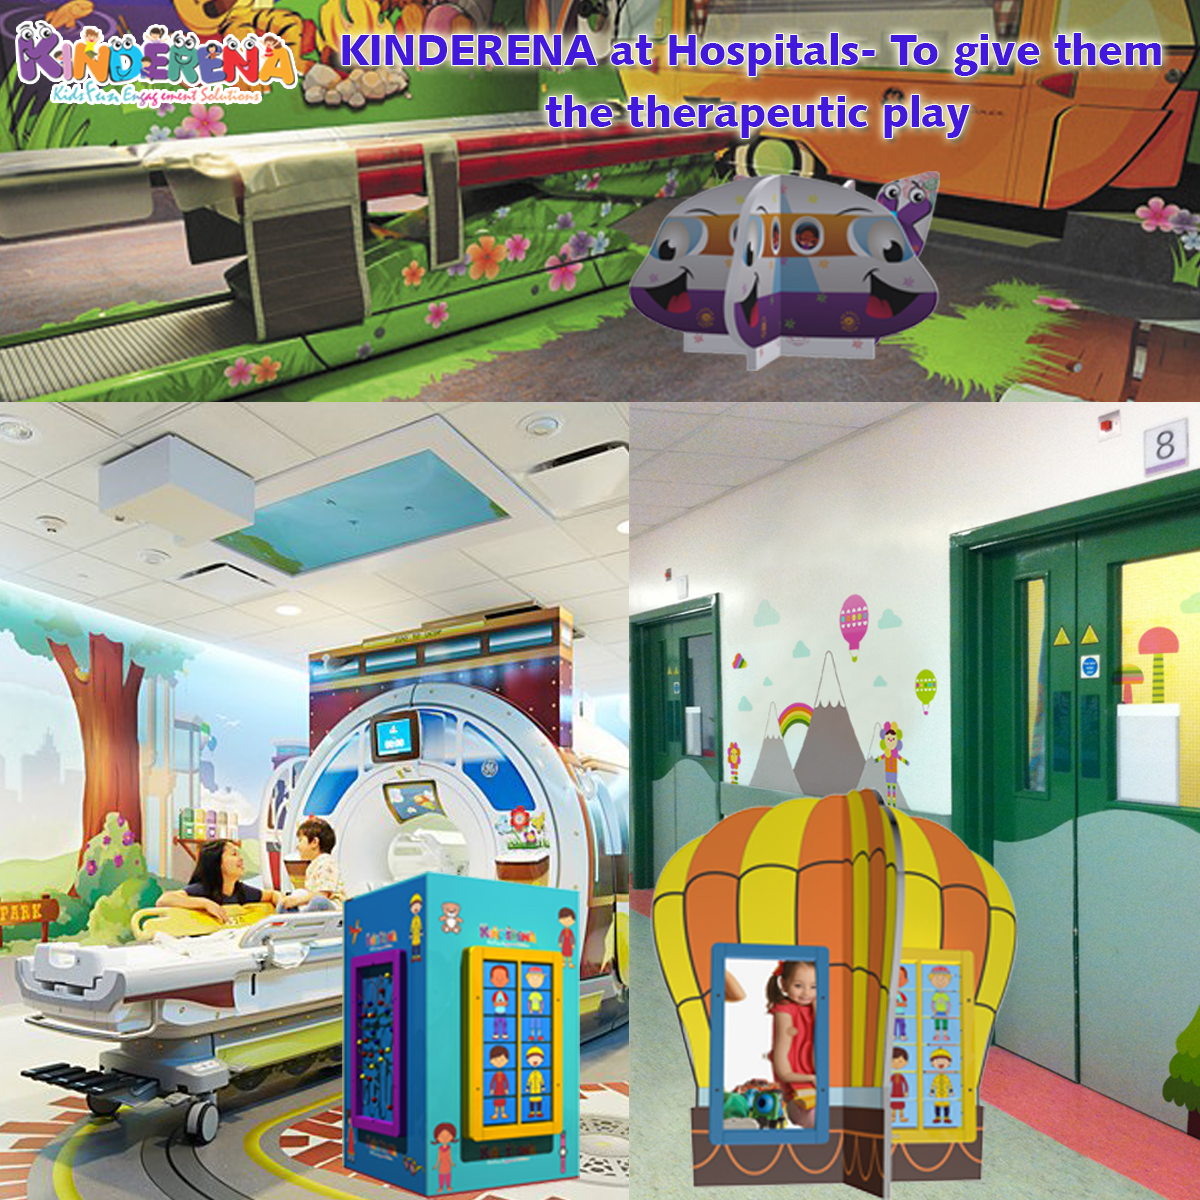 KINDERENA at Hospitals- To give them the therapeutic play.